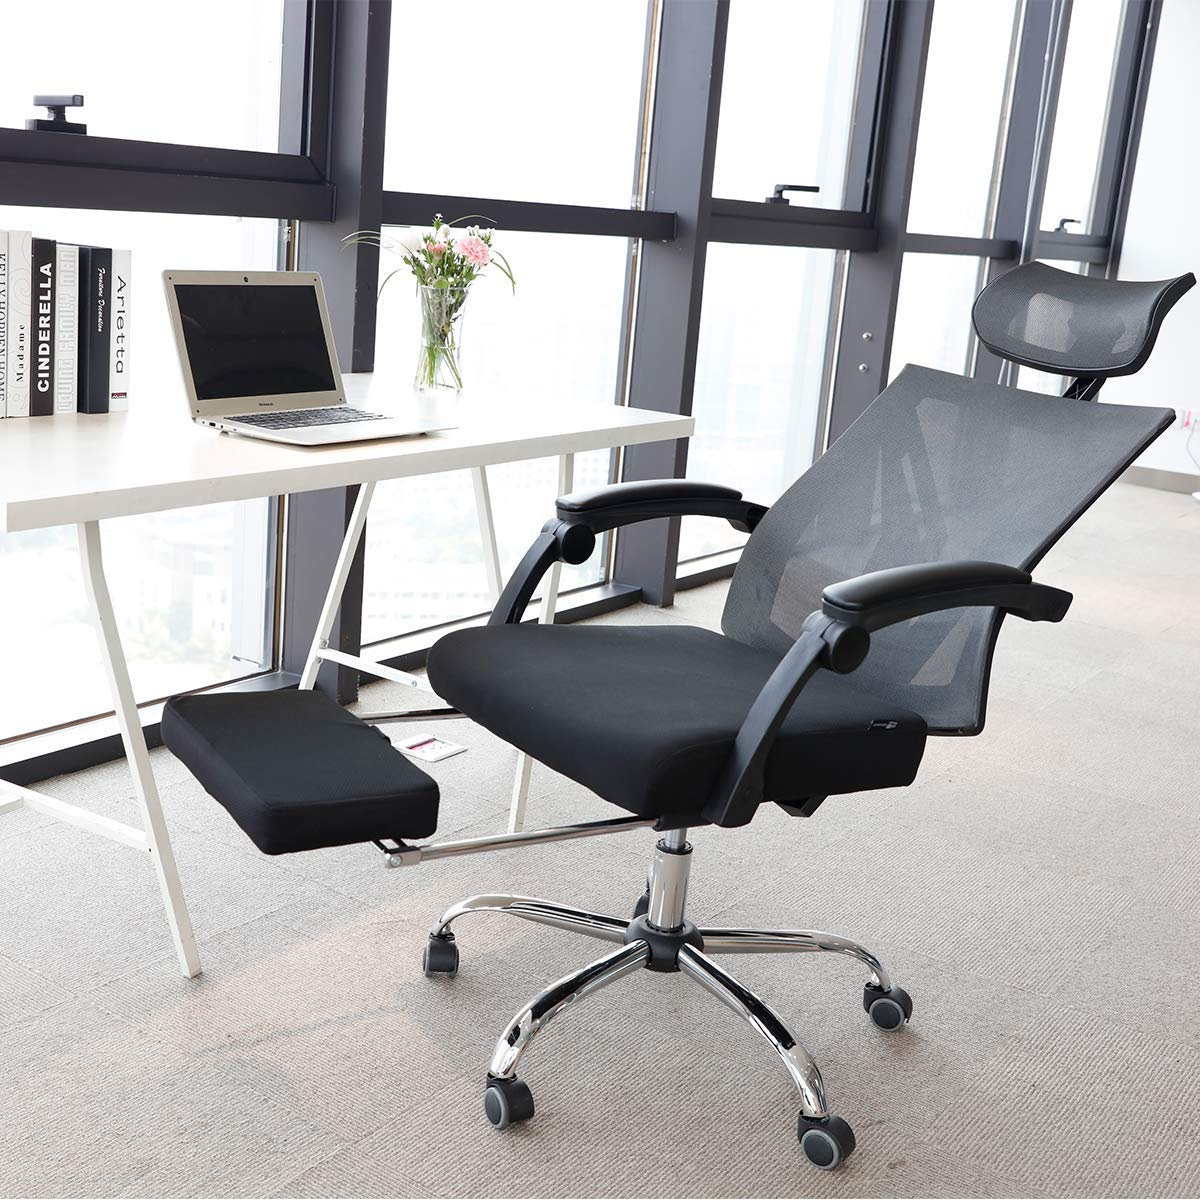 Hbada Ergonomic Office Recliner Chair - High-Back Desk Chair Racing Style with Lumbar Support - Height Adjustable Seat, Headrest- Breathable Mesh Back - Soft Foam Seat Cushion with Footrest, Black by Hbada (Image #10)